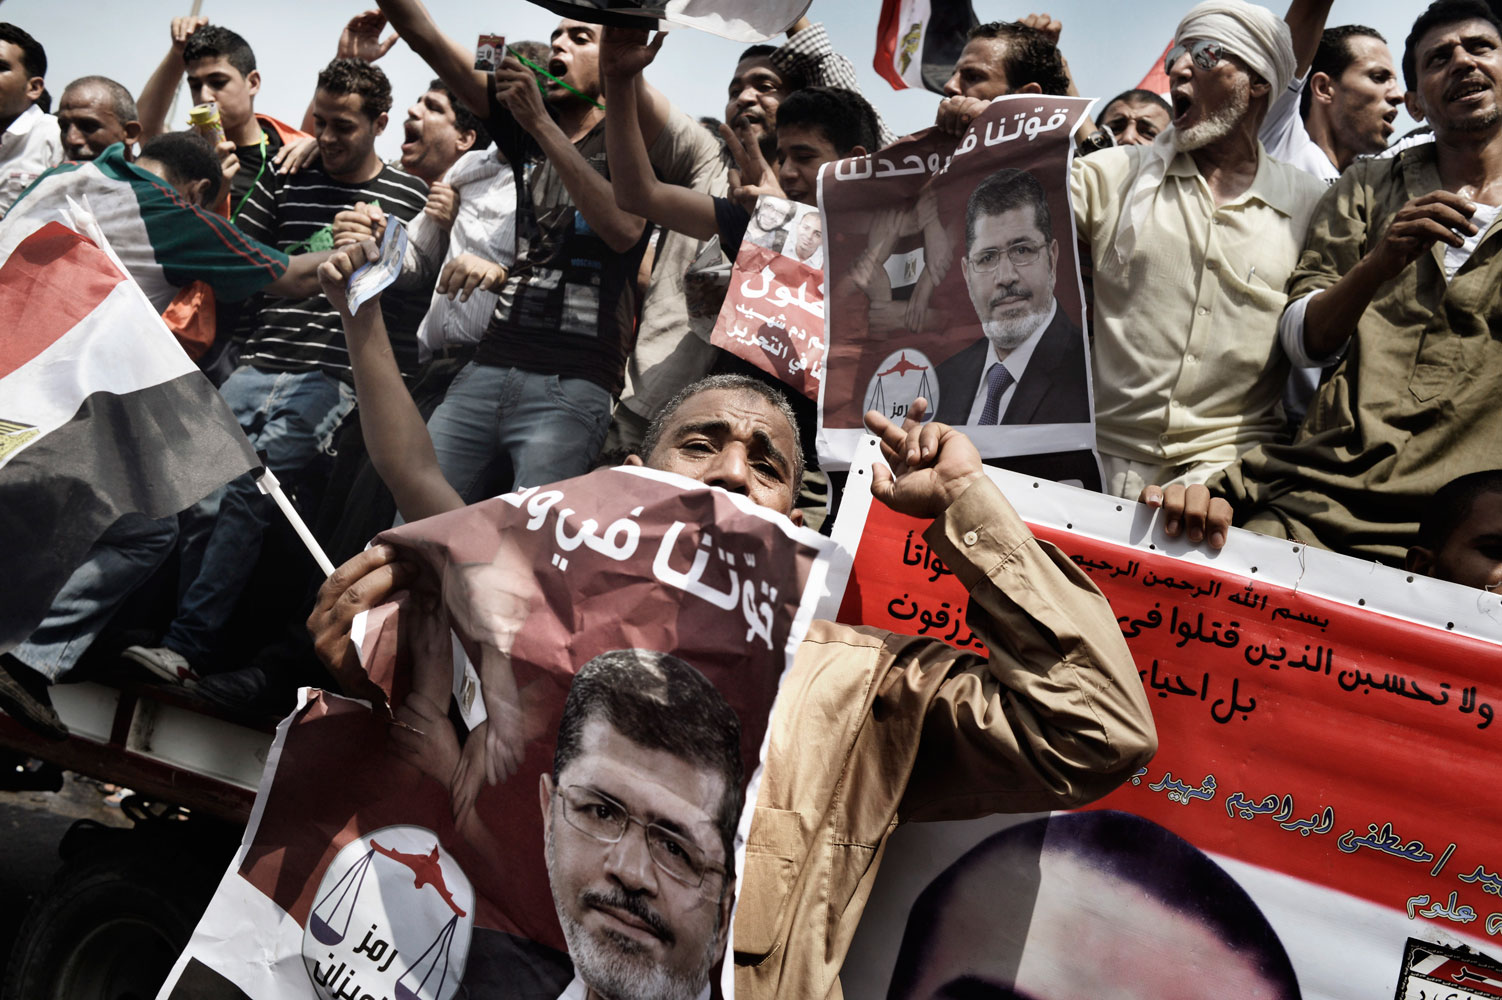 Supporters of Egypt's Muslim Brotherhood candidate Mohamed Morsy celebrate in Tahrir square after the Brotherhood claimed victory in the presidential vote. June 18, 2012.